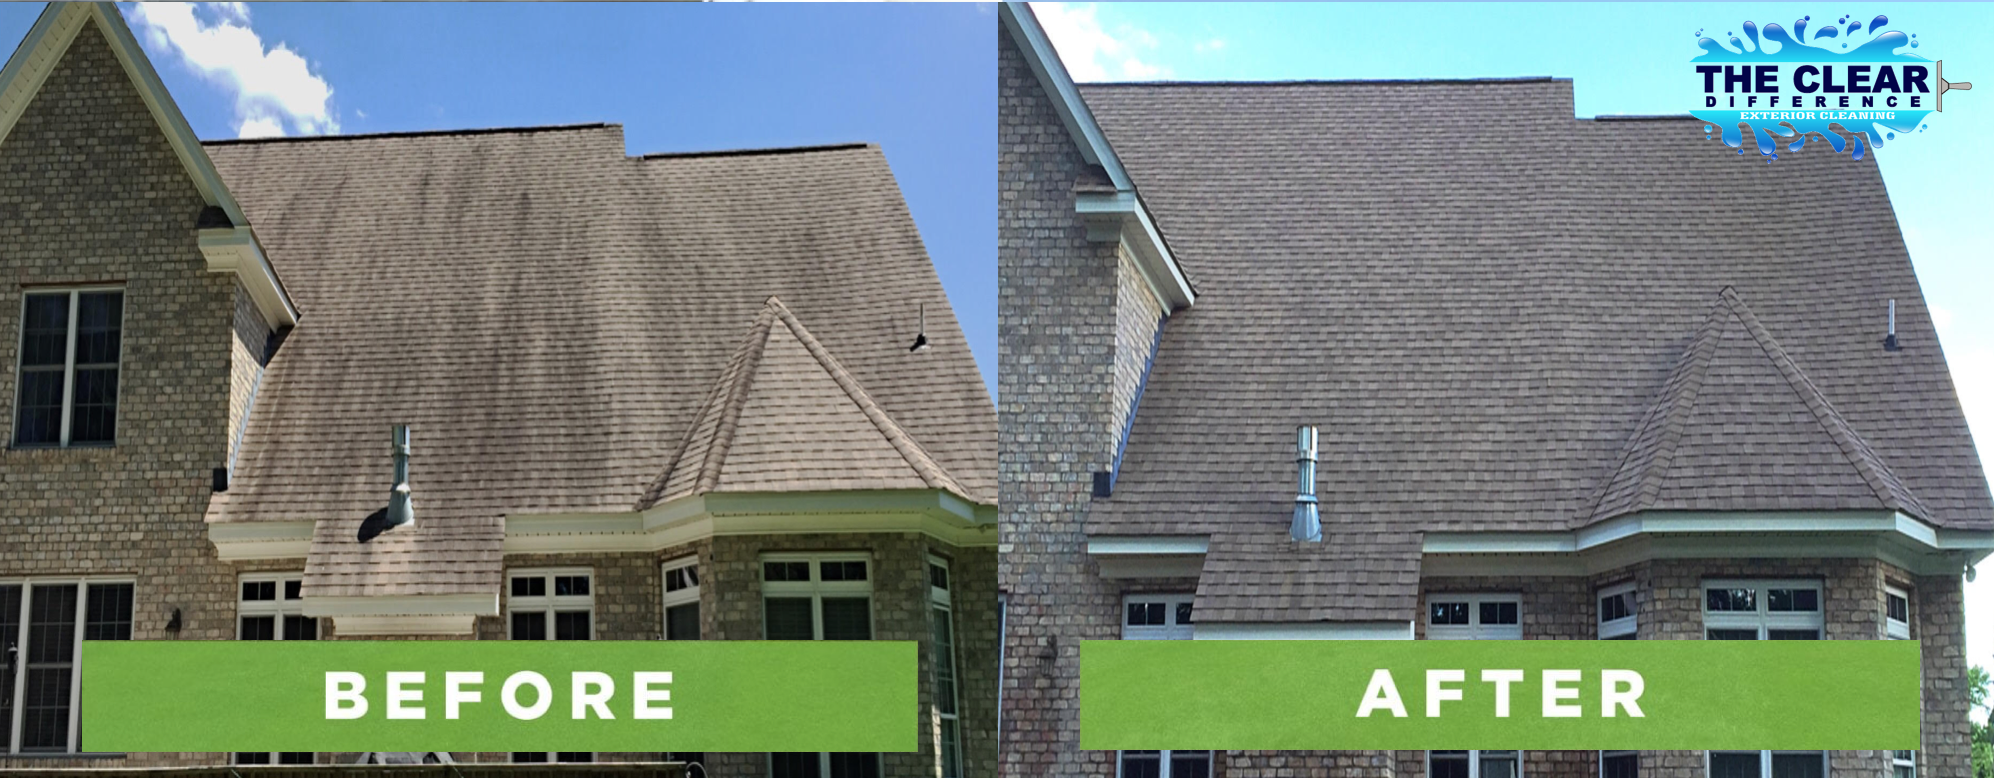 auburn roof cleaning experts specialist professional company low pressure